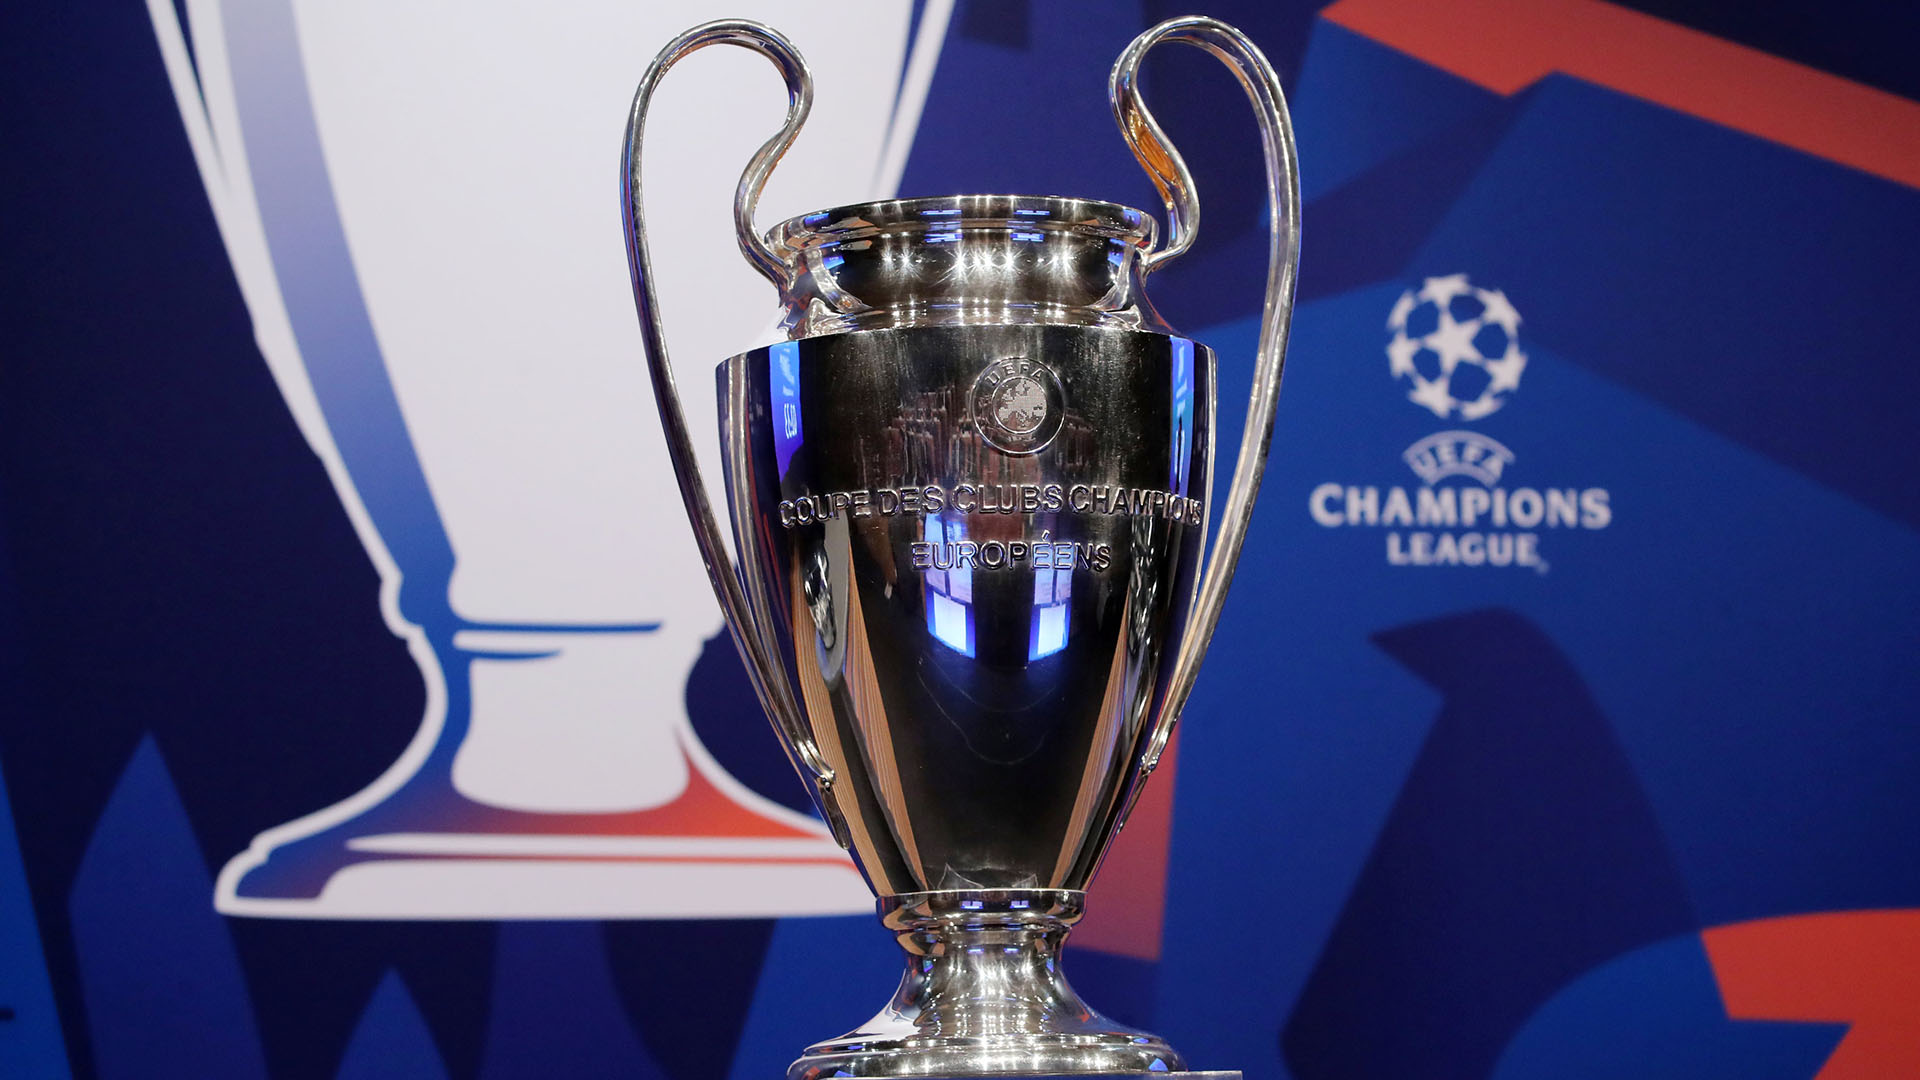 Se disputan los octavos de final de la UEFA Champions League (REUTERS)